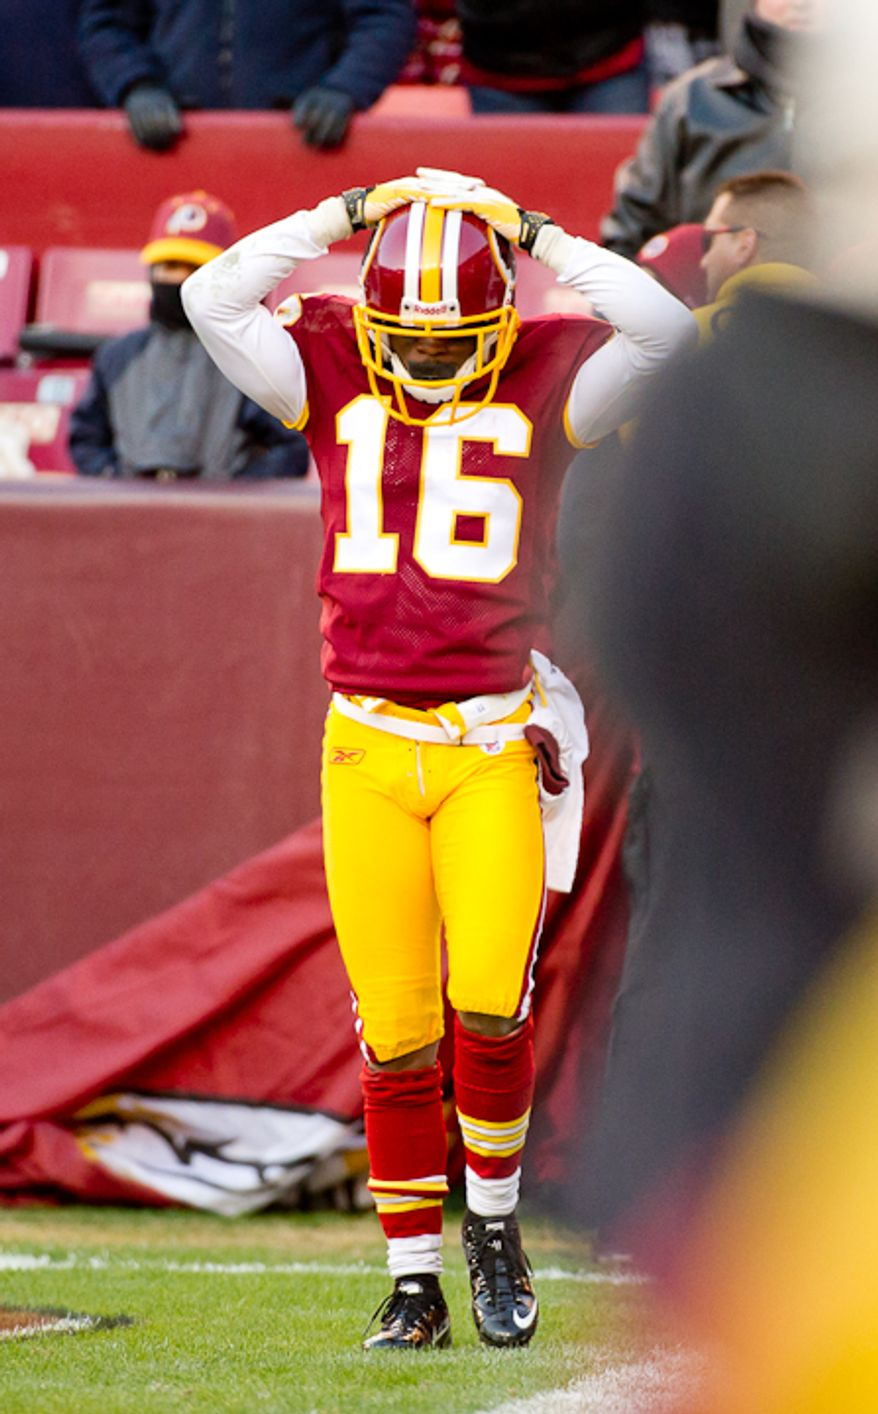 Washington Redskins wide receiver Brandon Banks (16) shows his frustration after his 59 yard touchdown run is brought back on an offensive holding call in the fourth period as the Washington Redskins take on the Minnesota Vikings at Fedex Field, Landover, Md., Saturday, Dec. 24, 2011. (Andrew Harnik / The Washington Times)